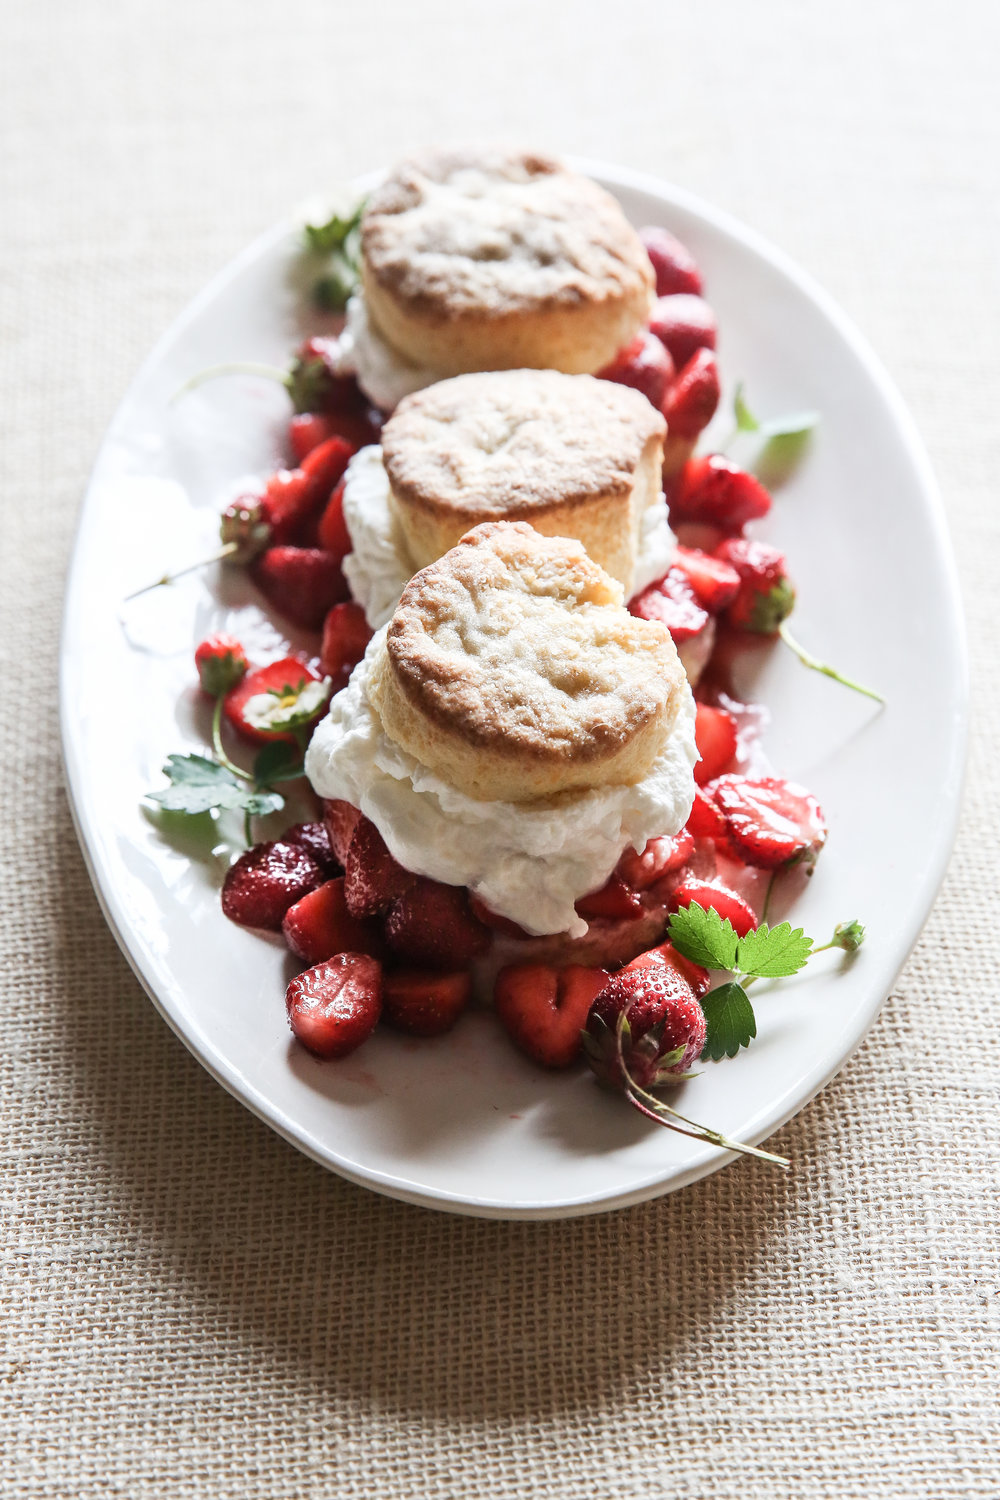 Strawberry Shortcake, James Beard, Food Stylist Judy Kim